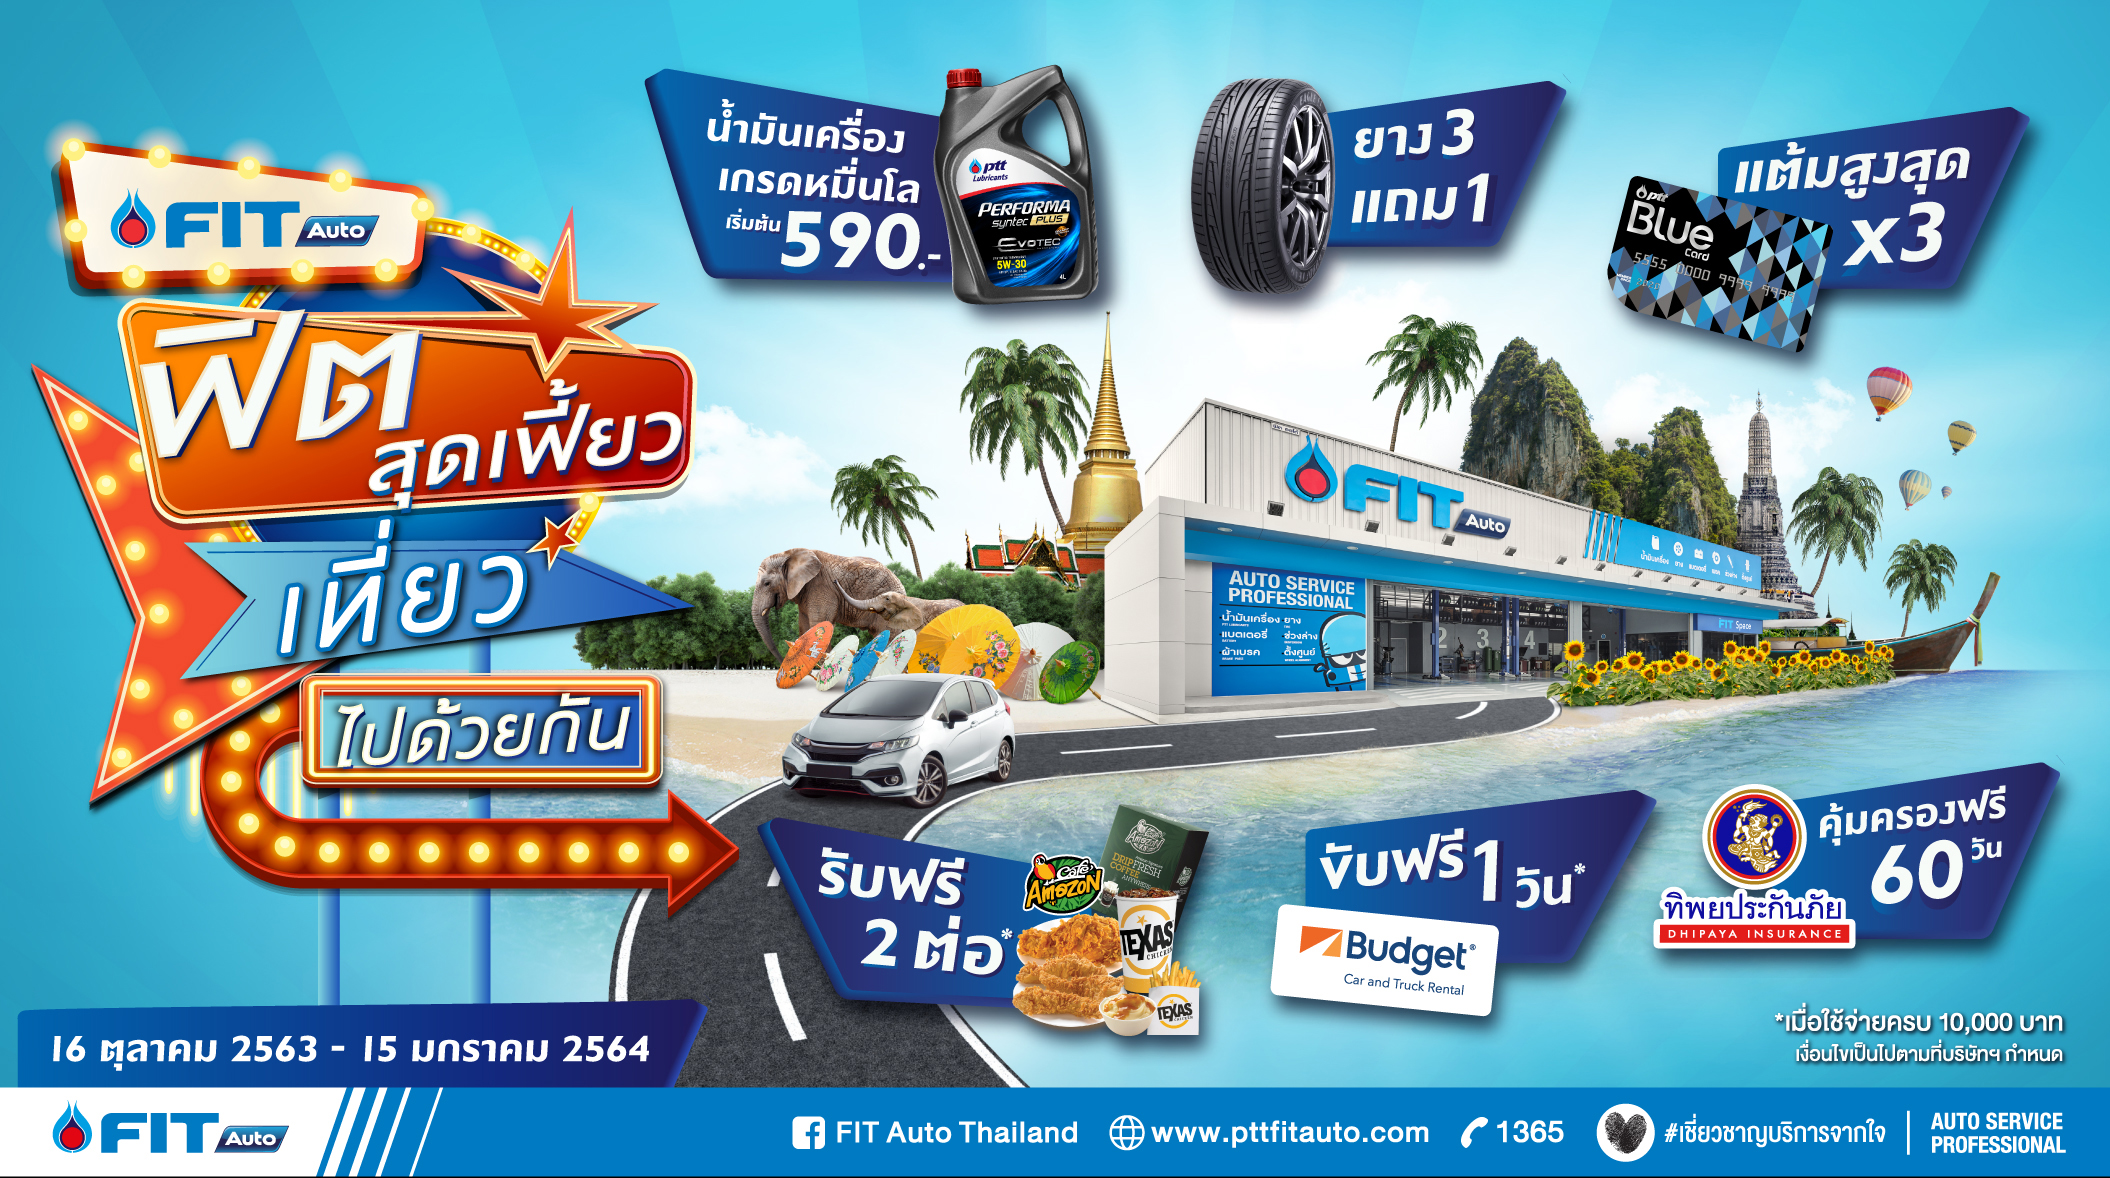 Fitauto OR PTT ปตท